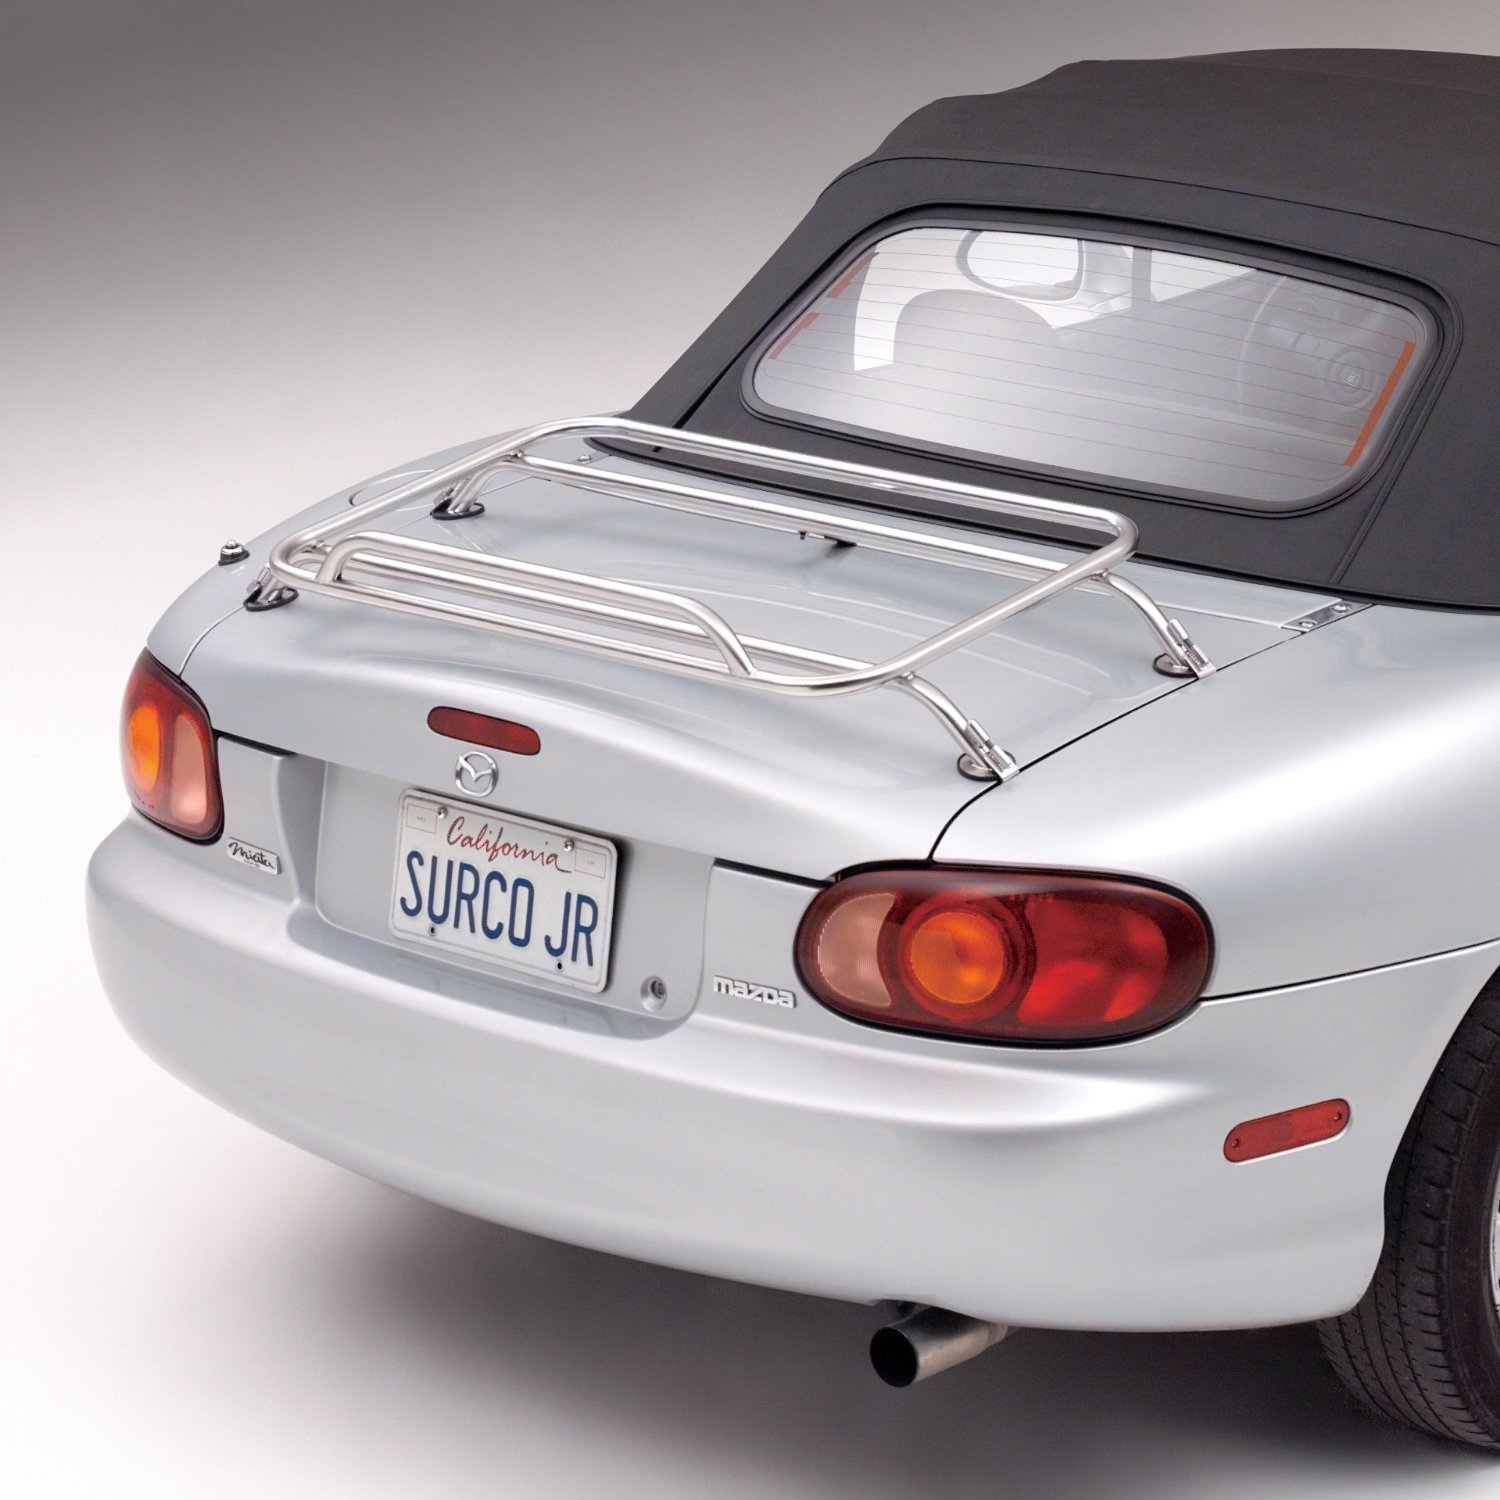 Surco Stainless Steel Removable Deck Rack- Miata 2016